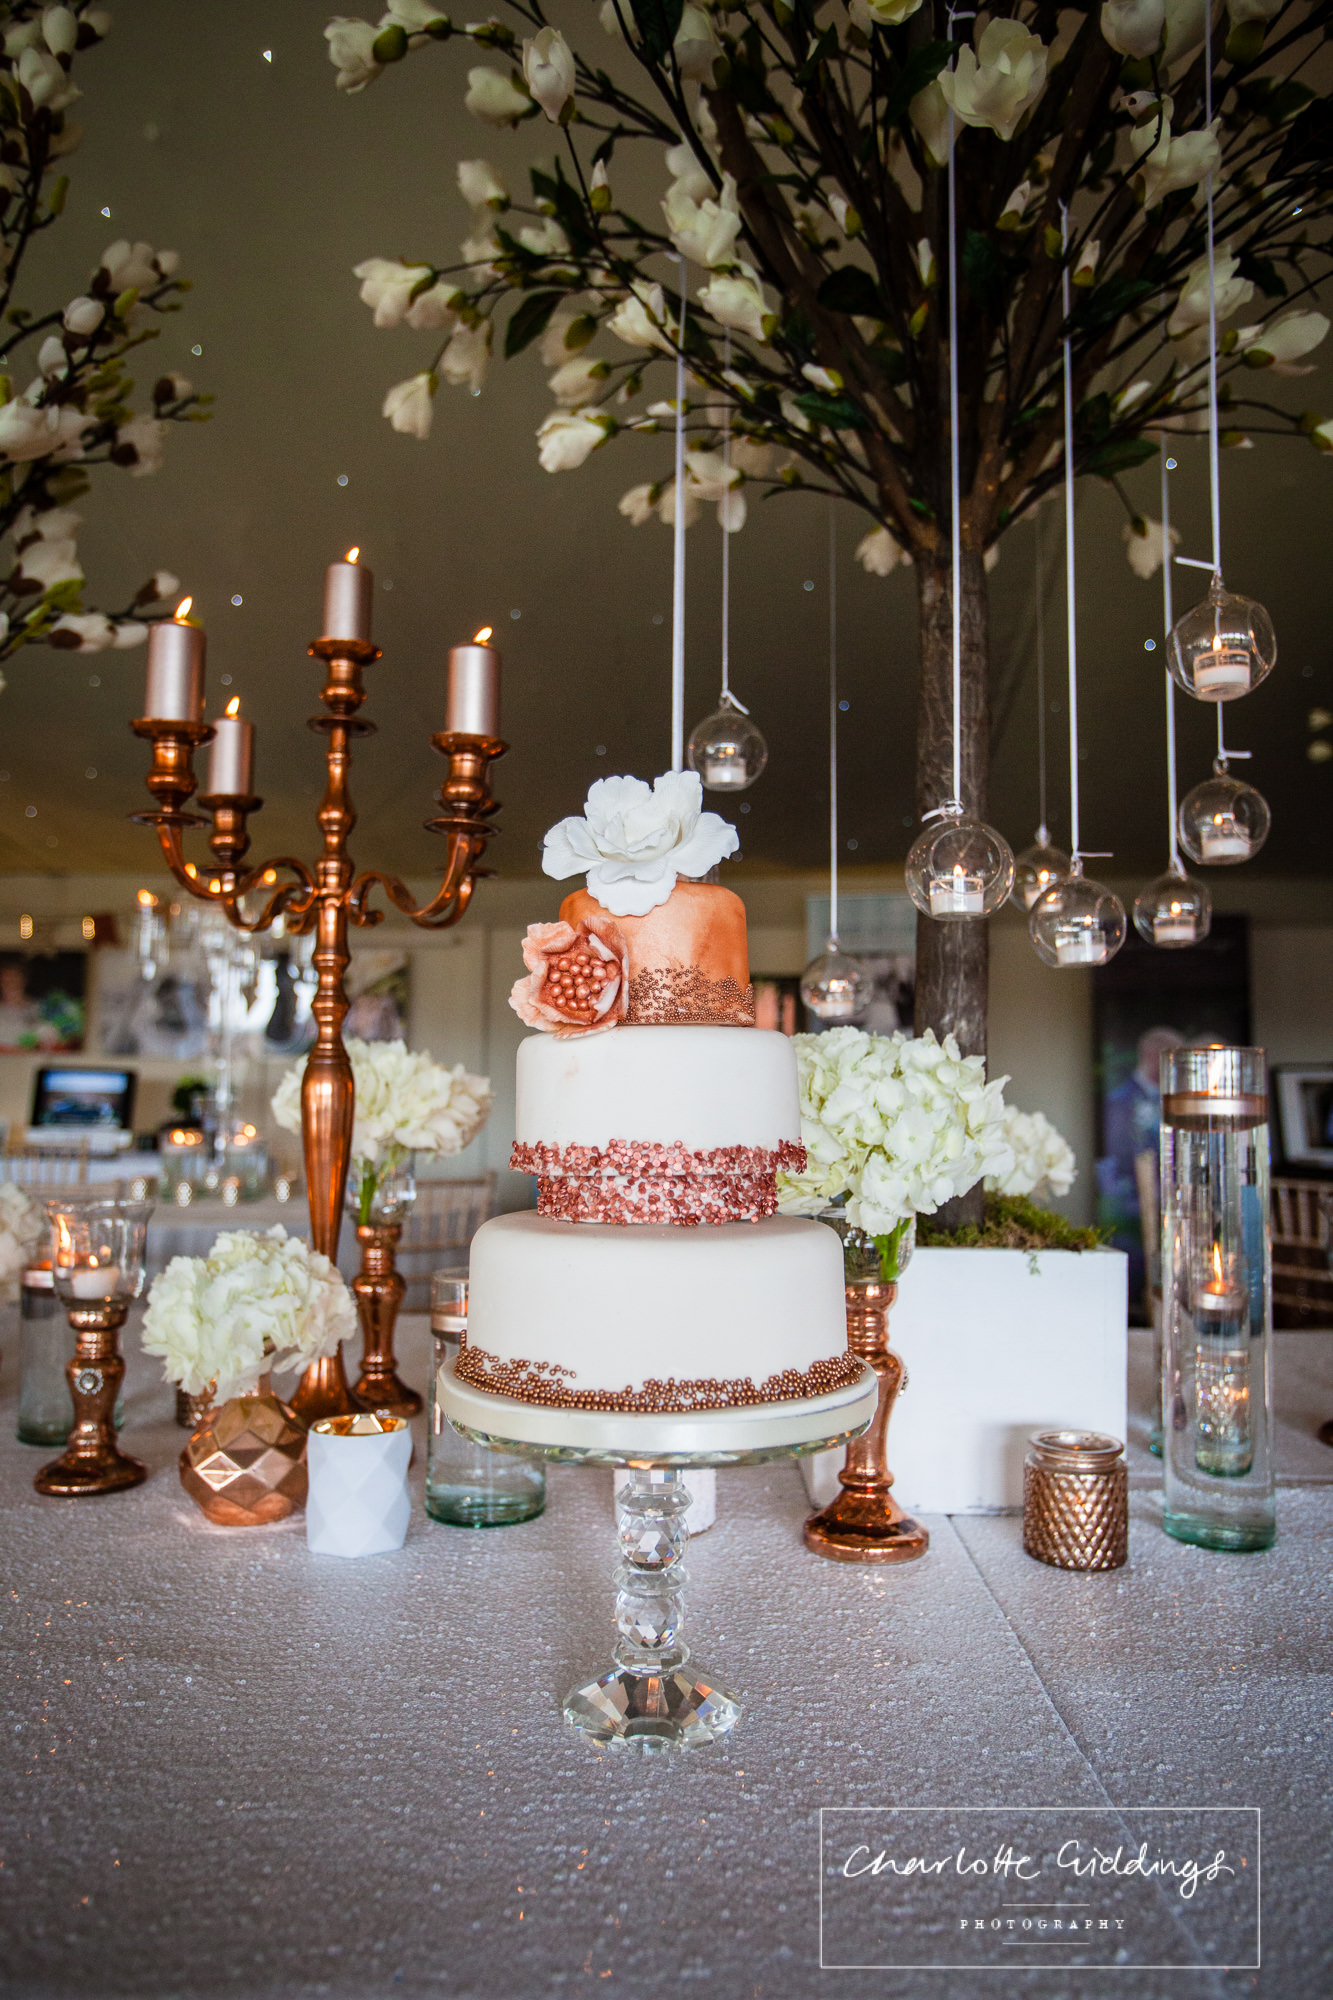 jo's couture cakes - copper theme wedding cake